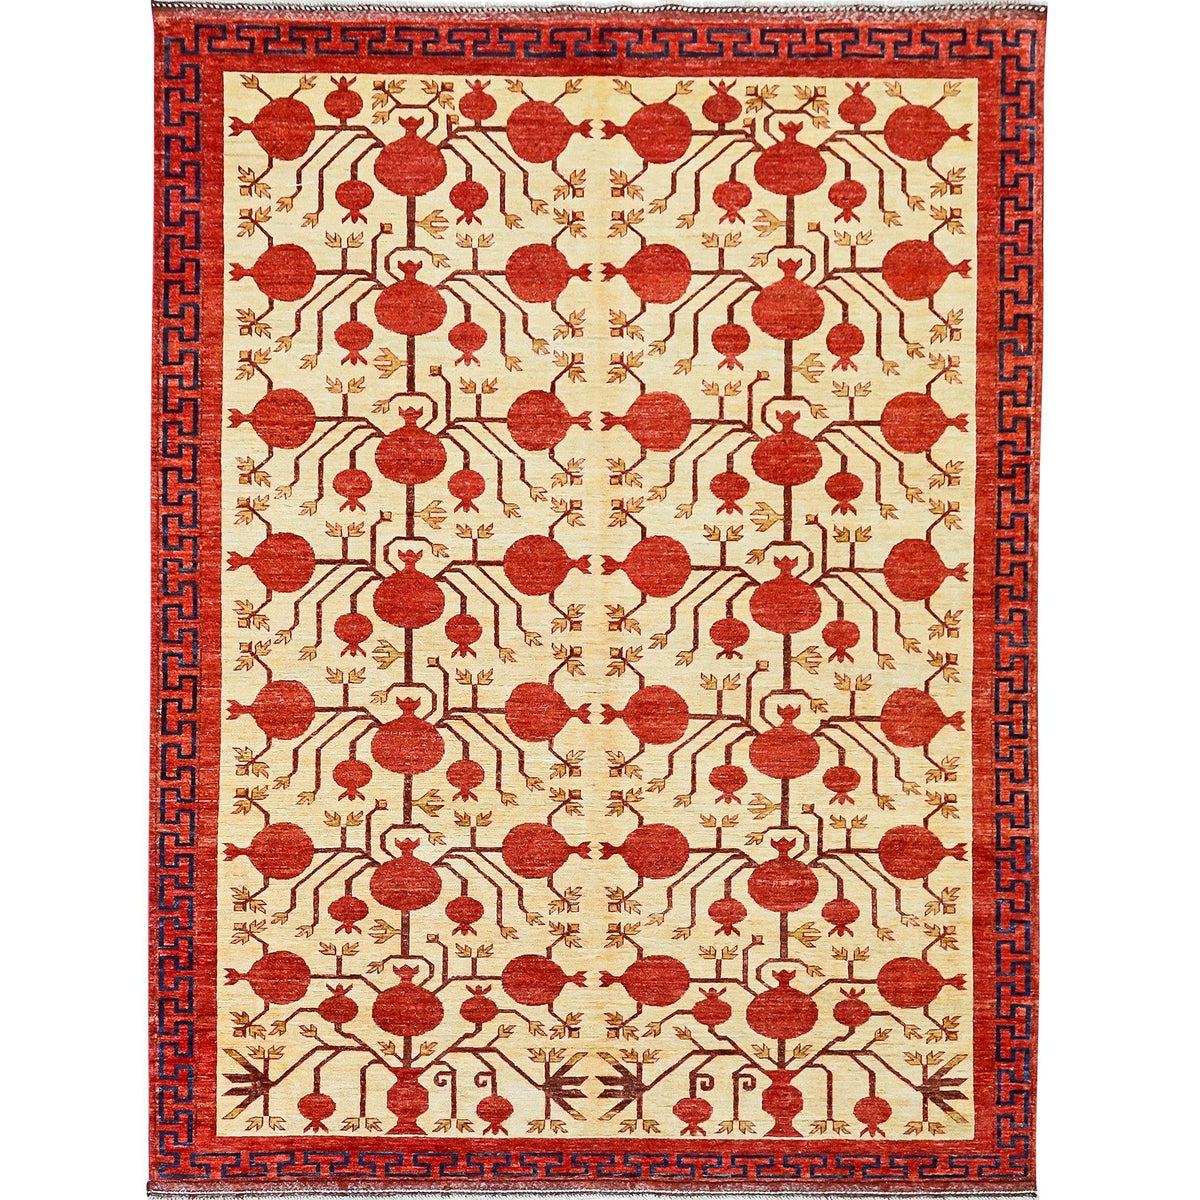 Fine Hand-knotted Tribal Vintage Design Wool Rug 224cm x 313cm Persian-Rug | House-of-Haghi | NewMarket | Auckland | NZ | Handmade Persian Rugs | Hand Knotted Persian Rugs